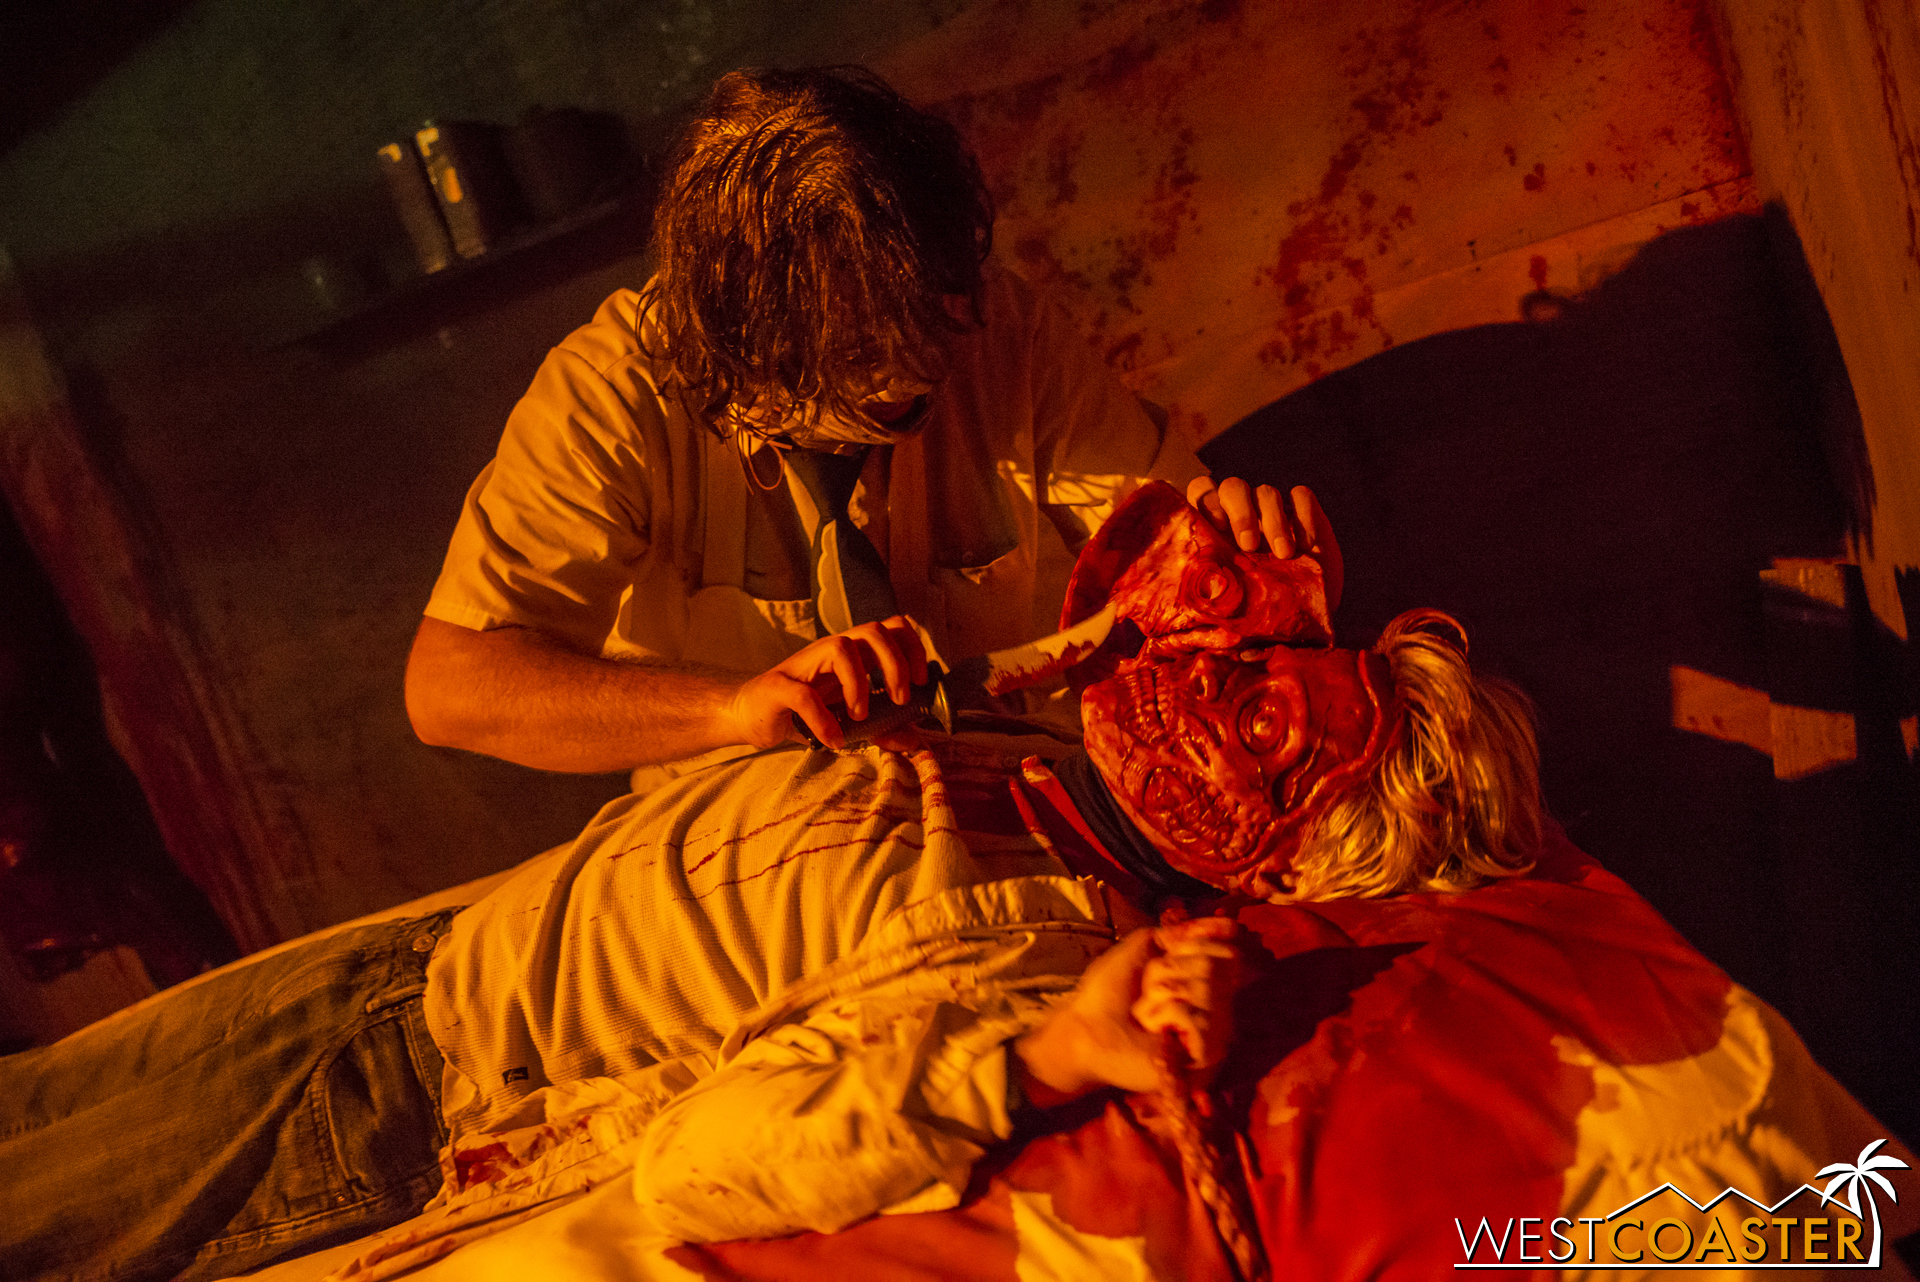 Leatherface performs facial surgery here similar to his role in the Titans of Terror maze. It's still not pretty.